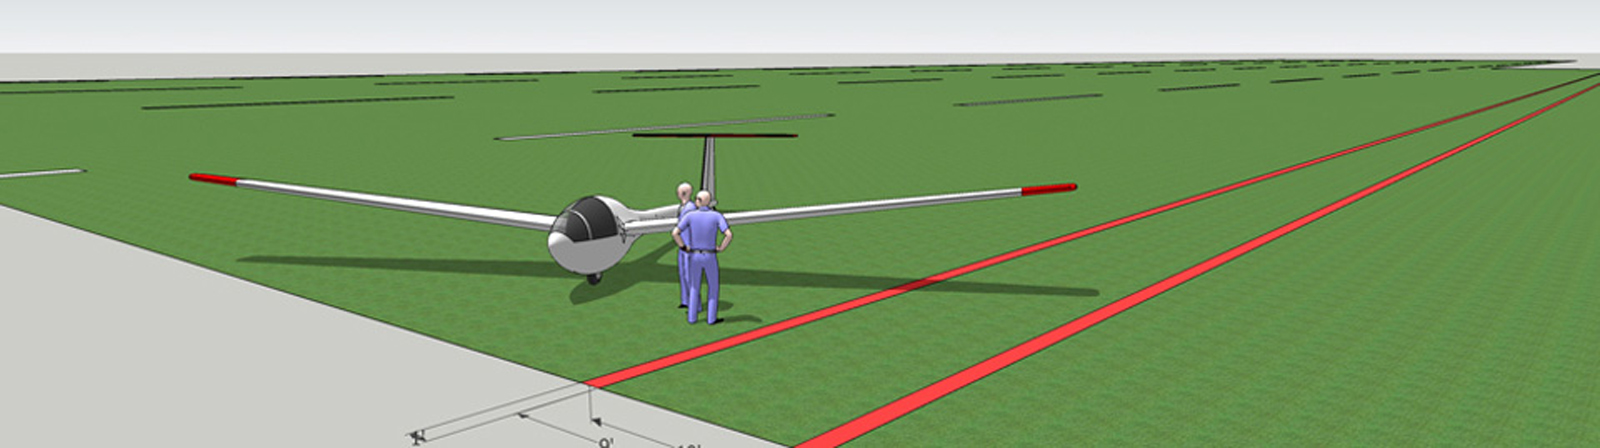 aviation turf for safety